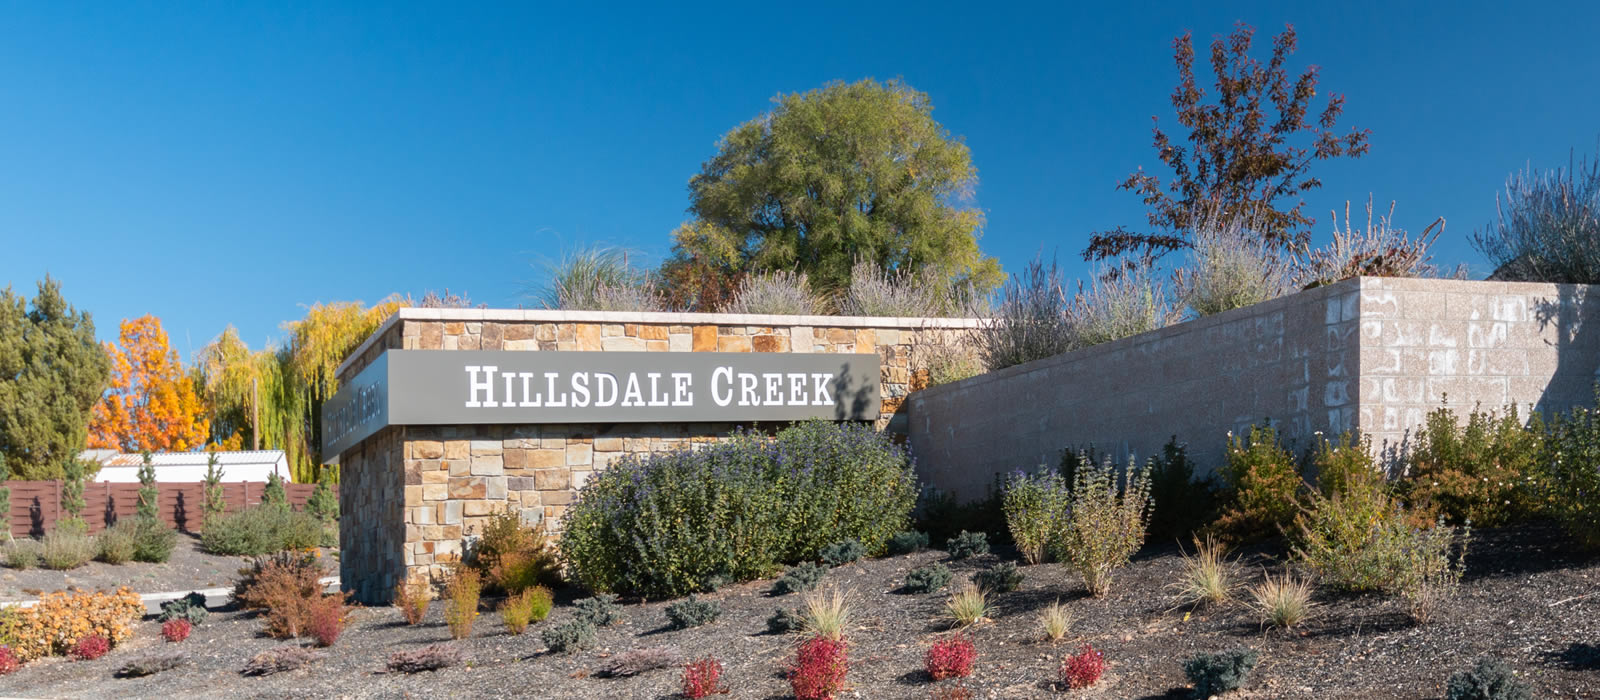 Hillsdale Creek Meridian Idaho